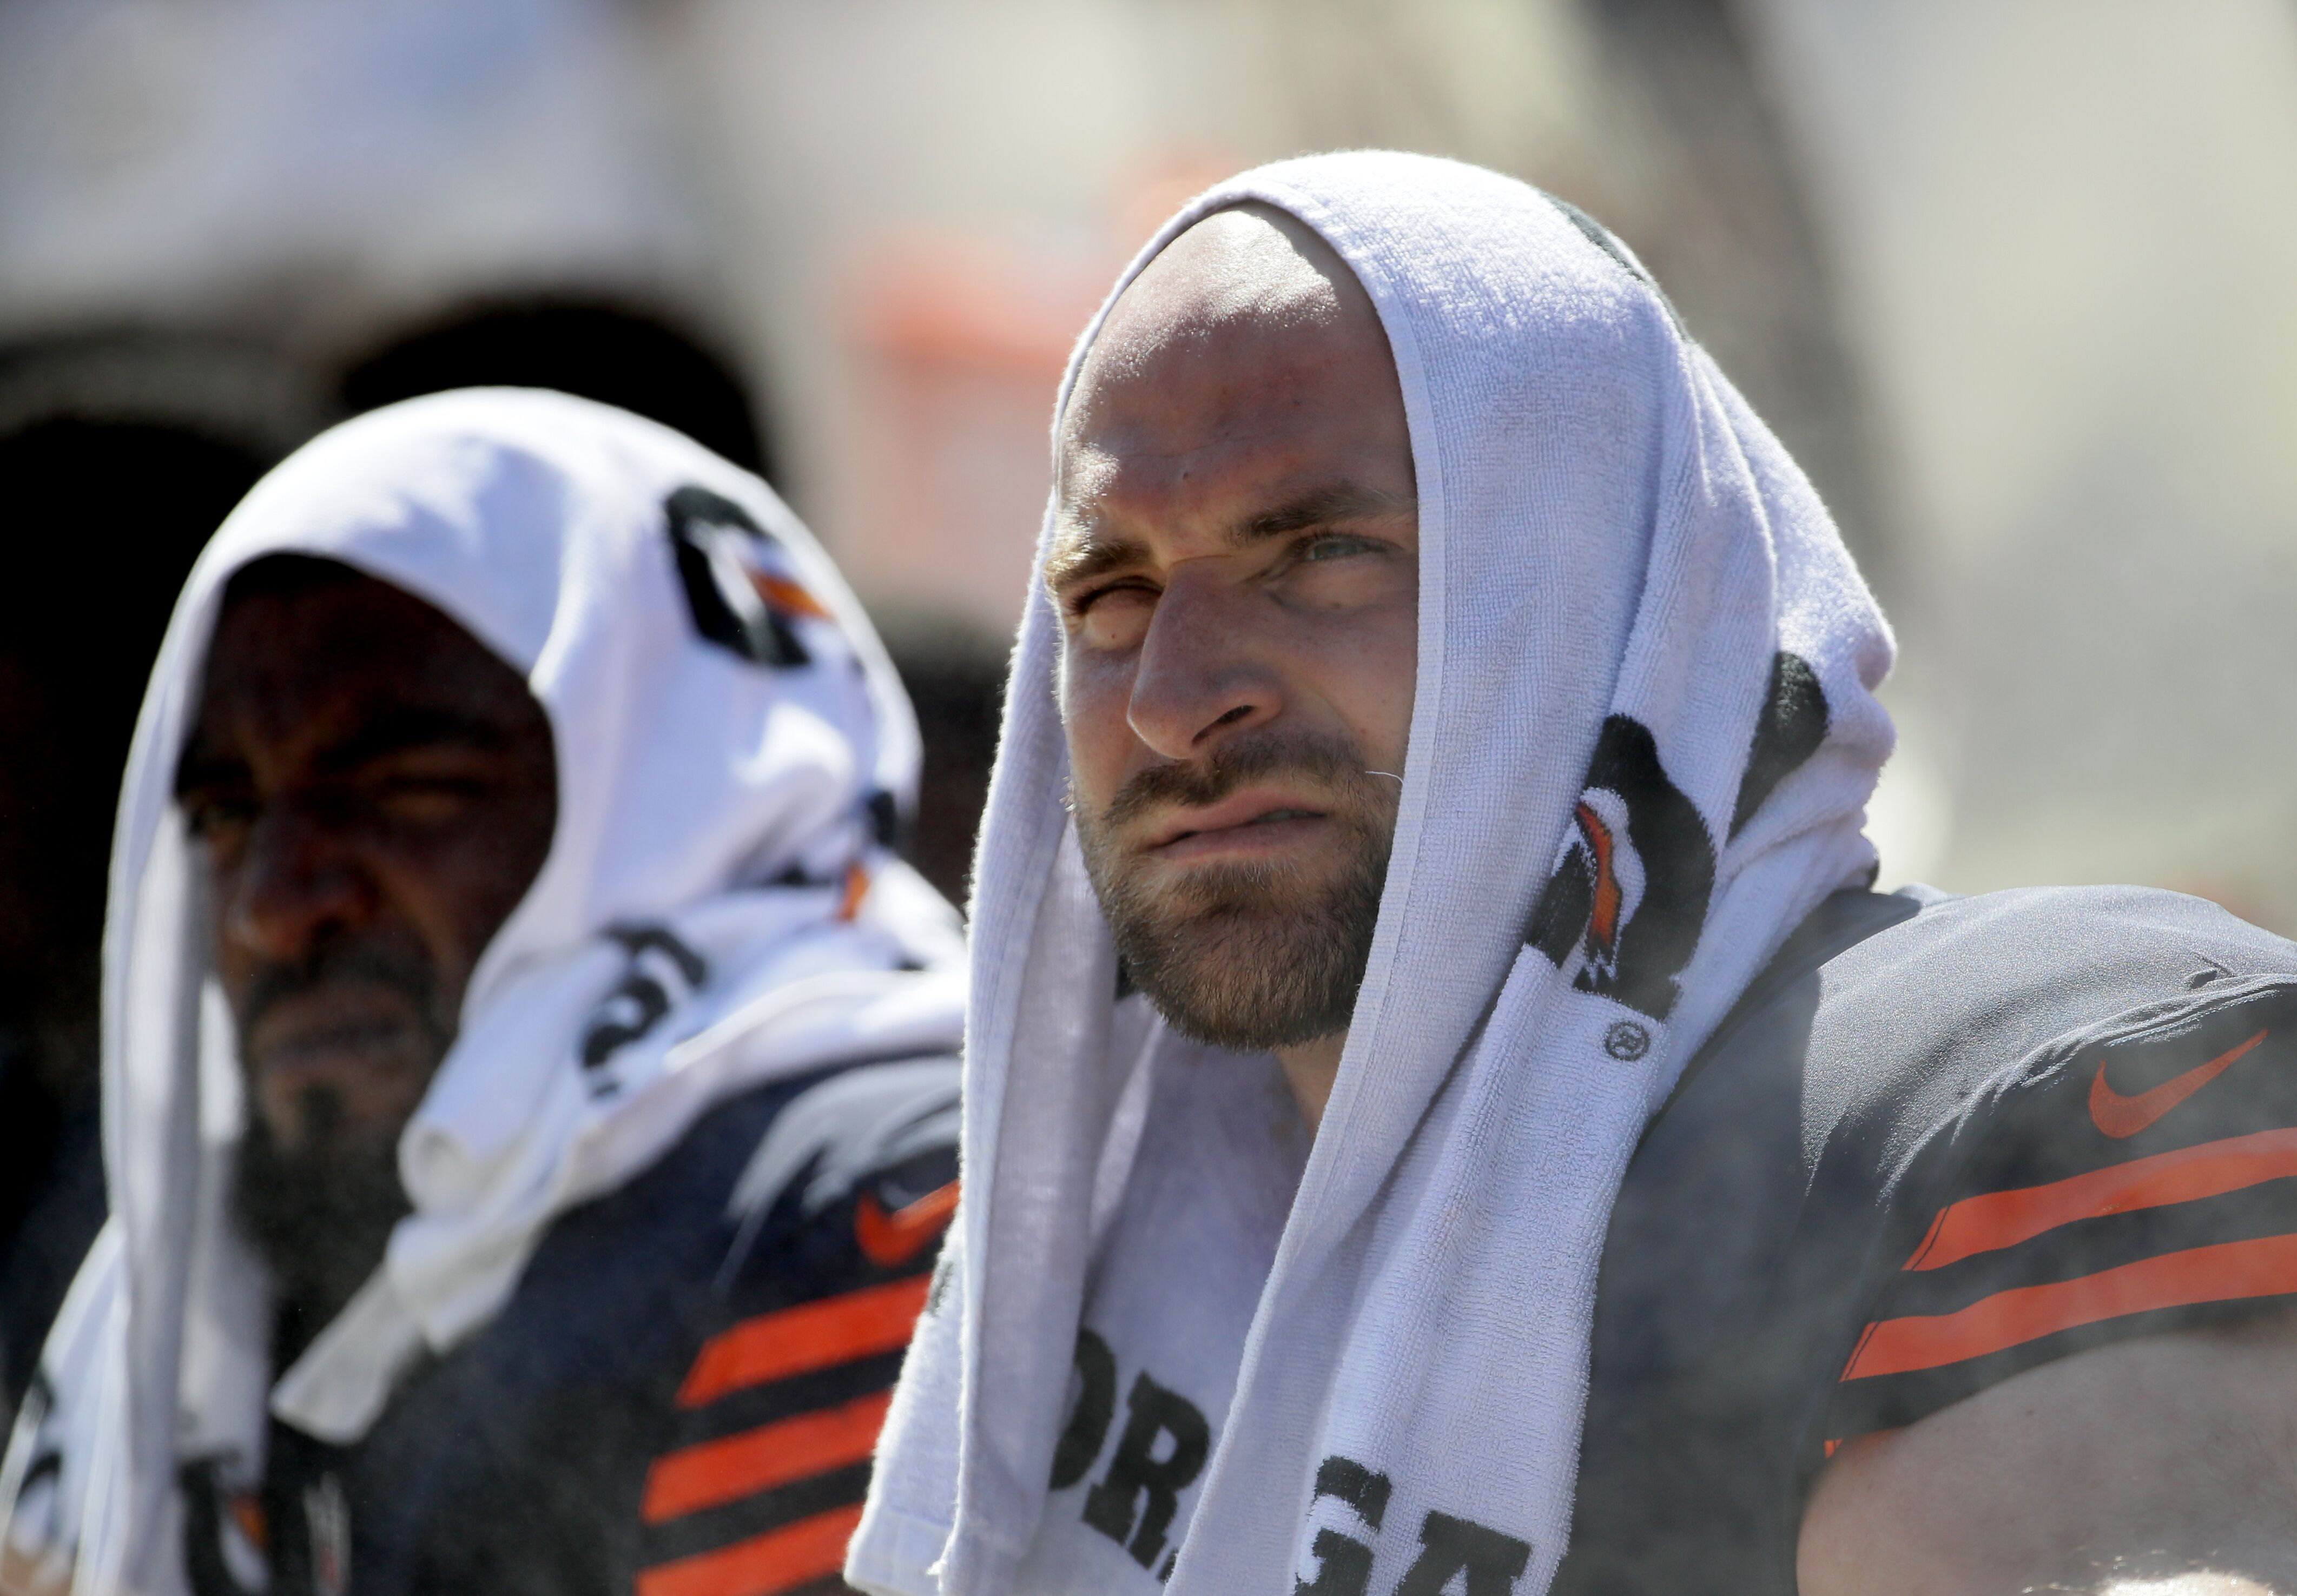 Chicago Bears: Can Kyle Long return to his Pro Bowl days?